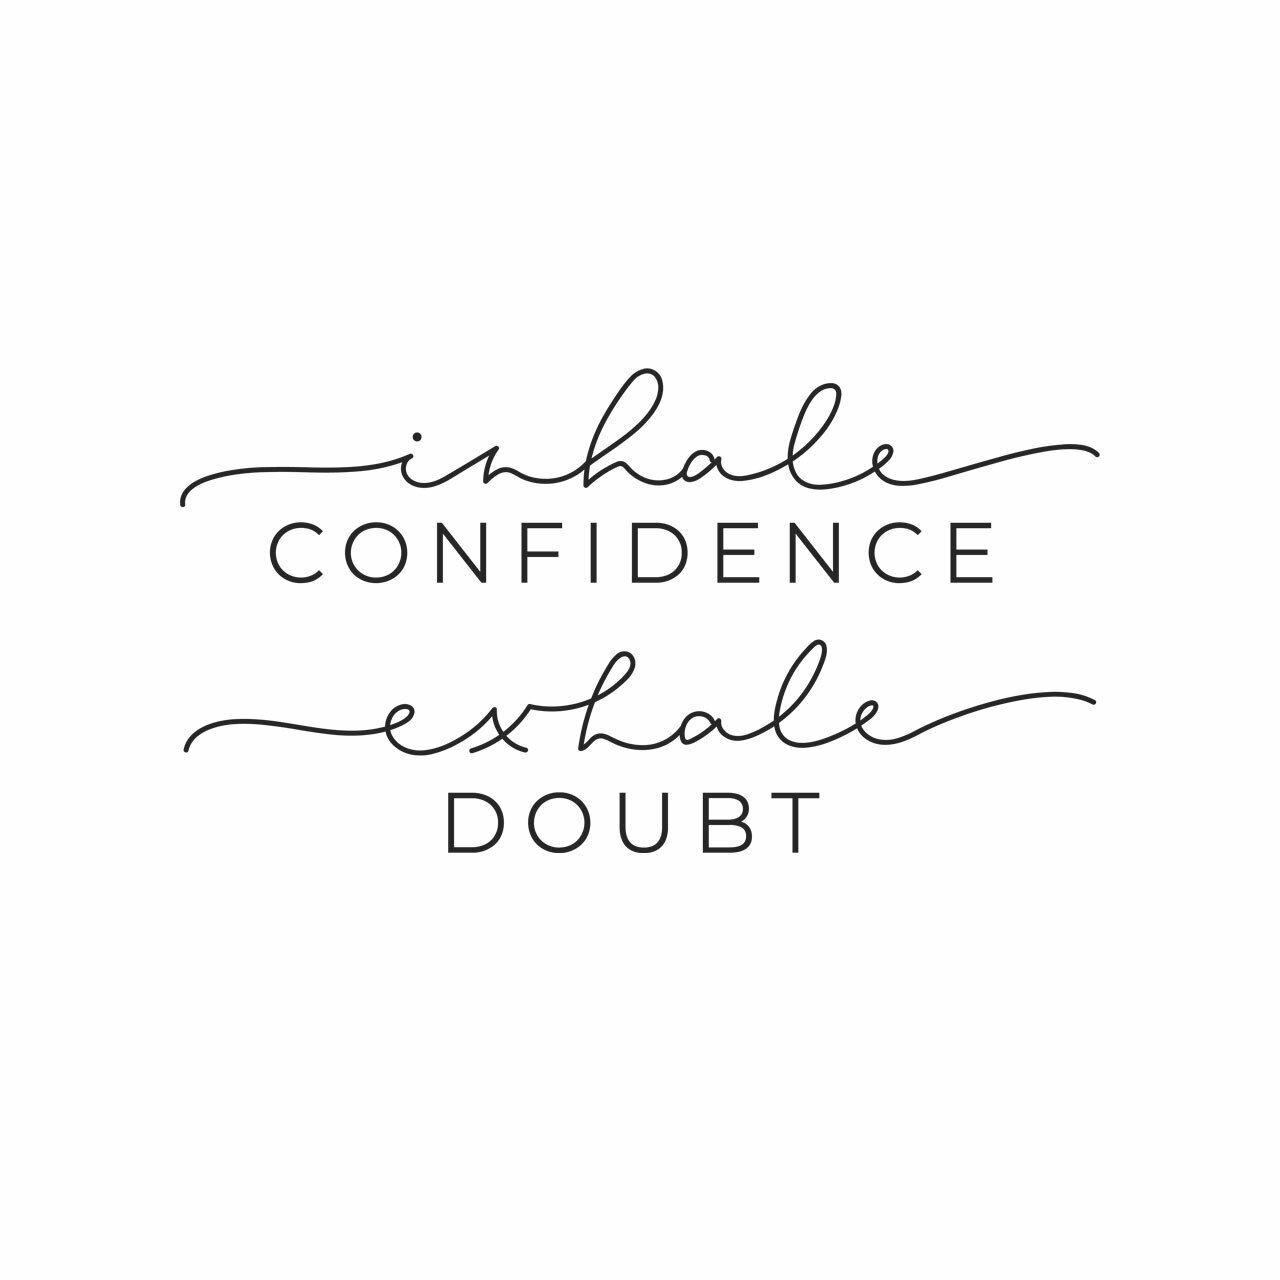 Inhale Confidence Exhale Doubt written in mixed fonts on four lines in black on a white background